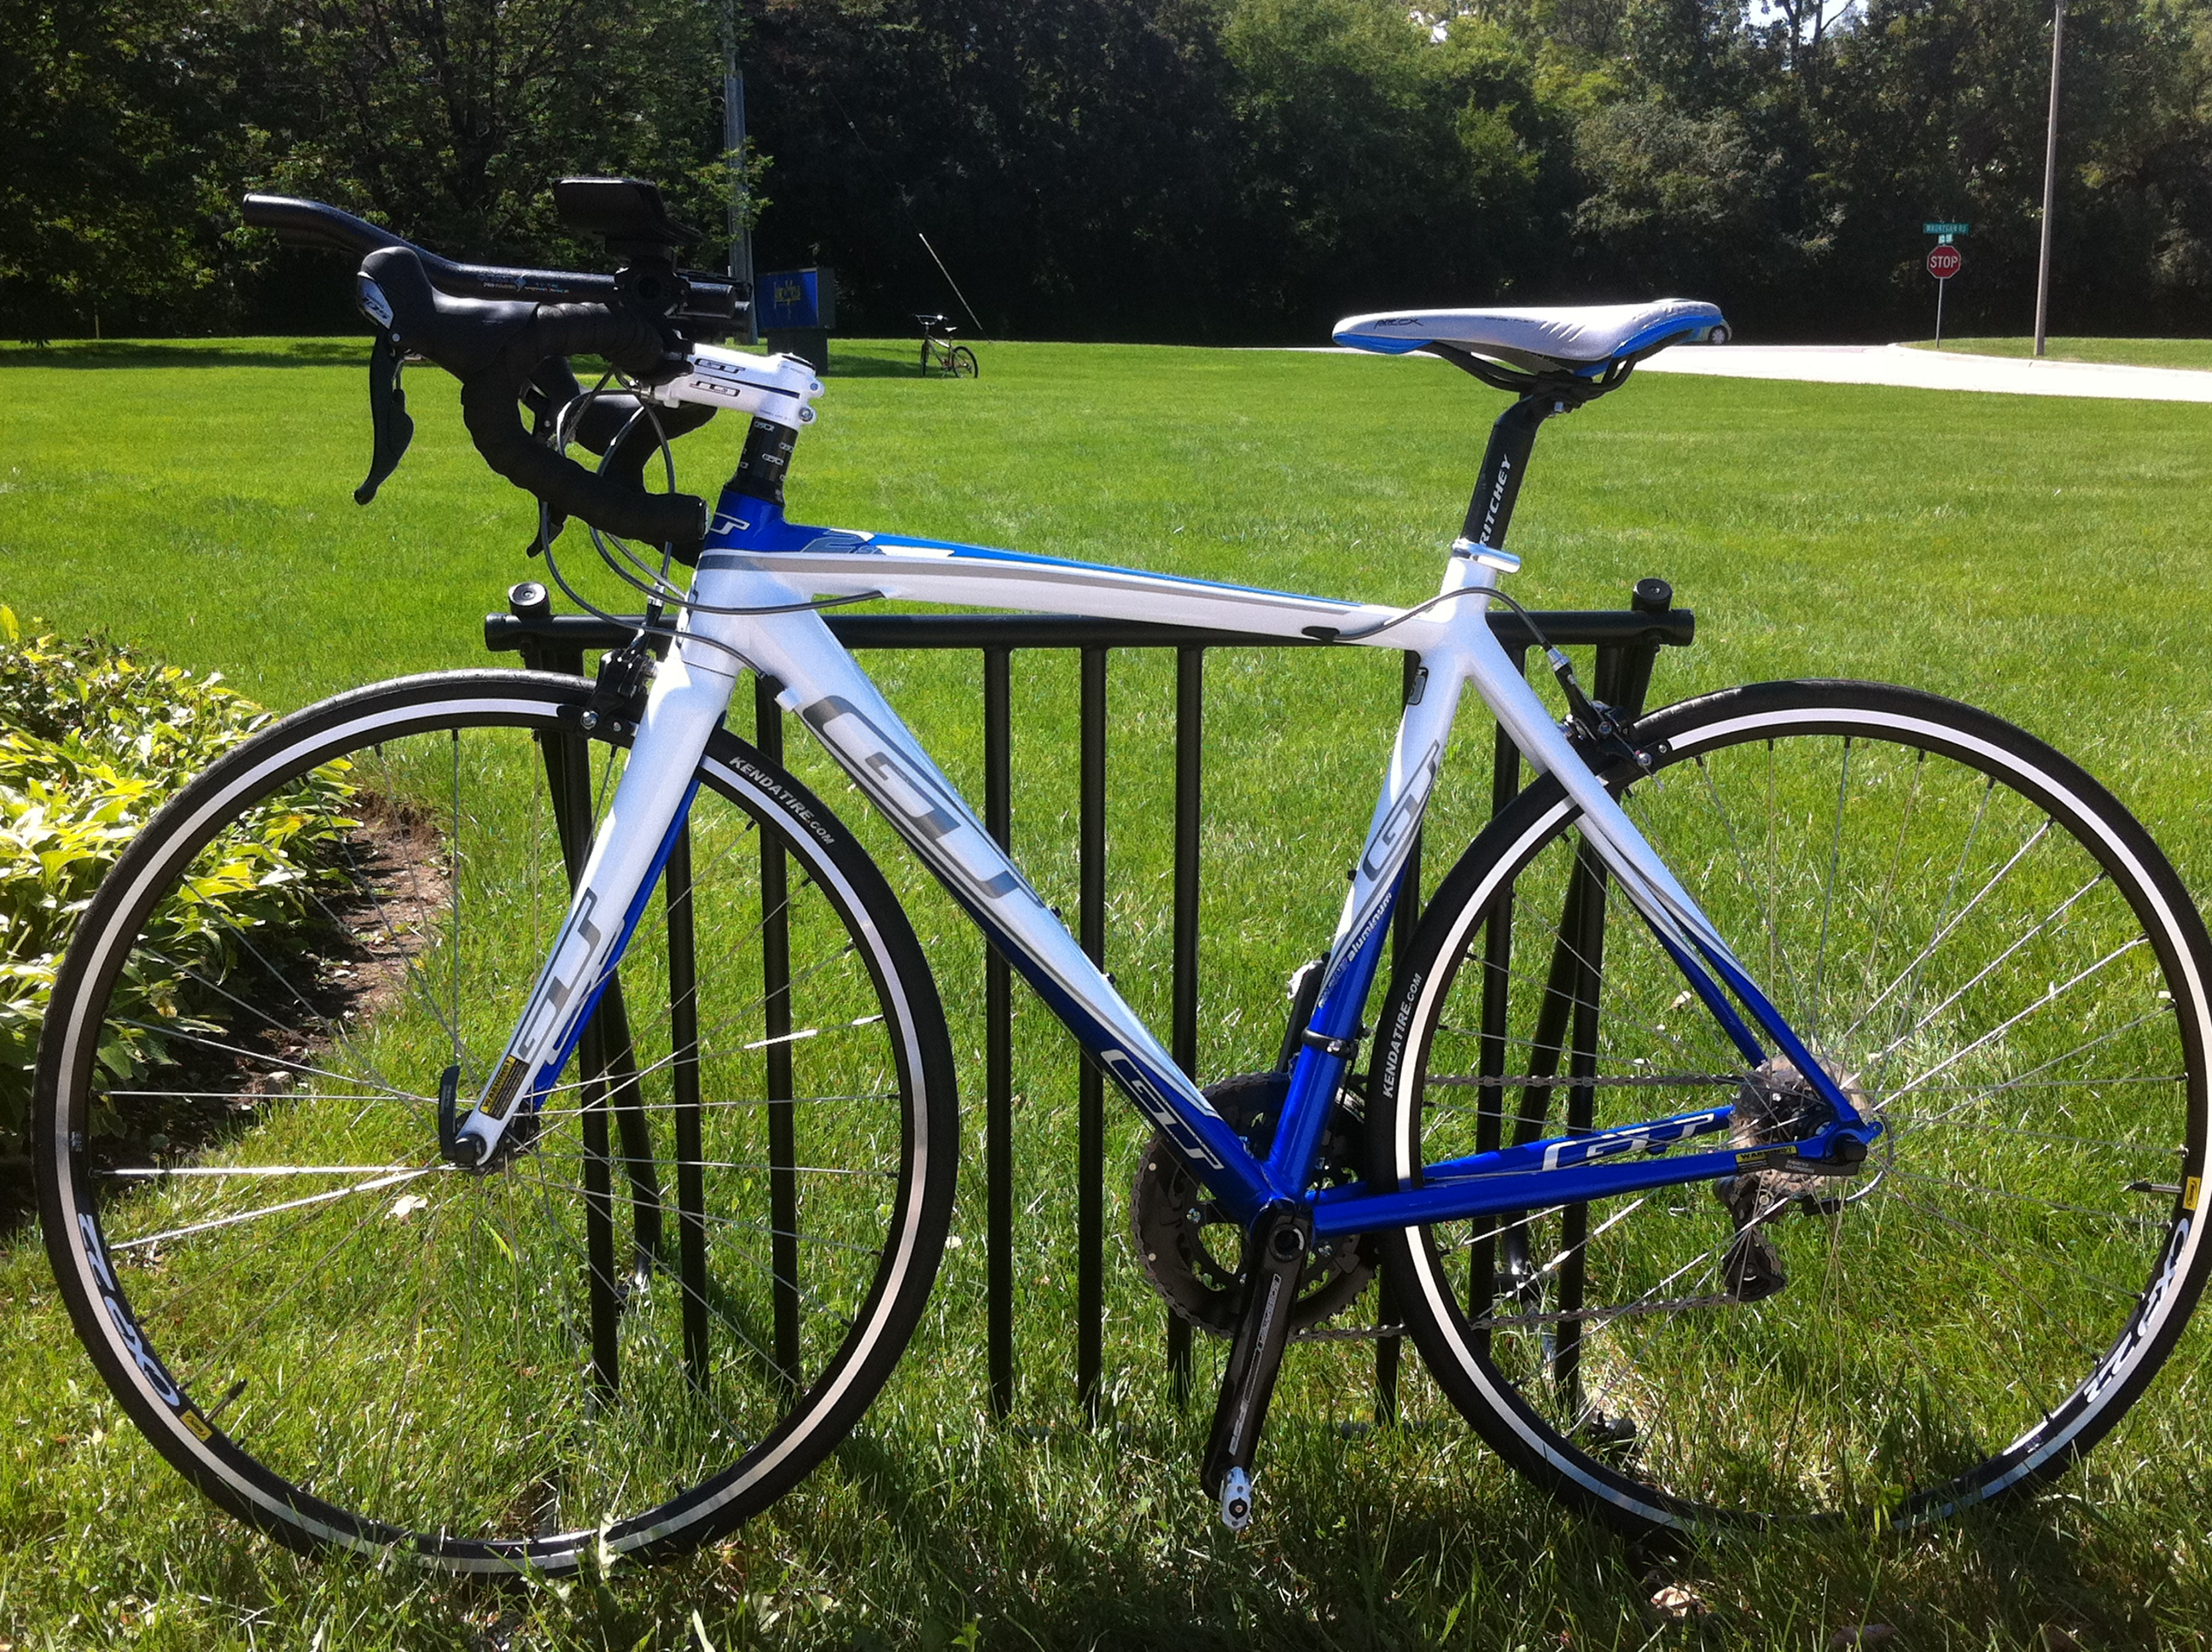 2011 GT GTR Series 2.0 Road Bike | Chicago Stolen Bike Registry